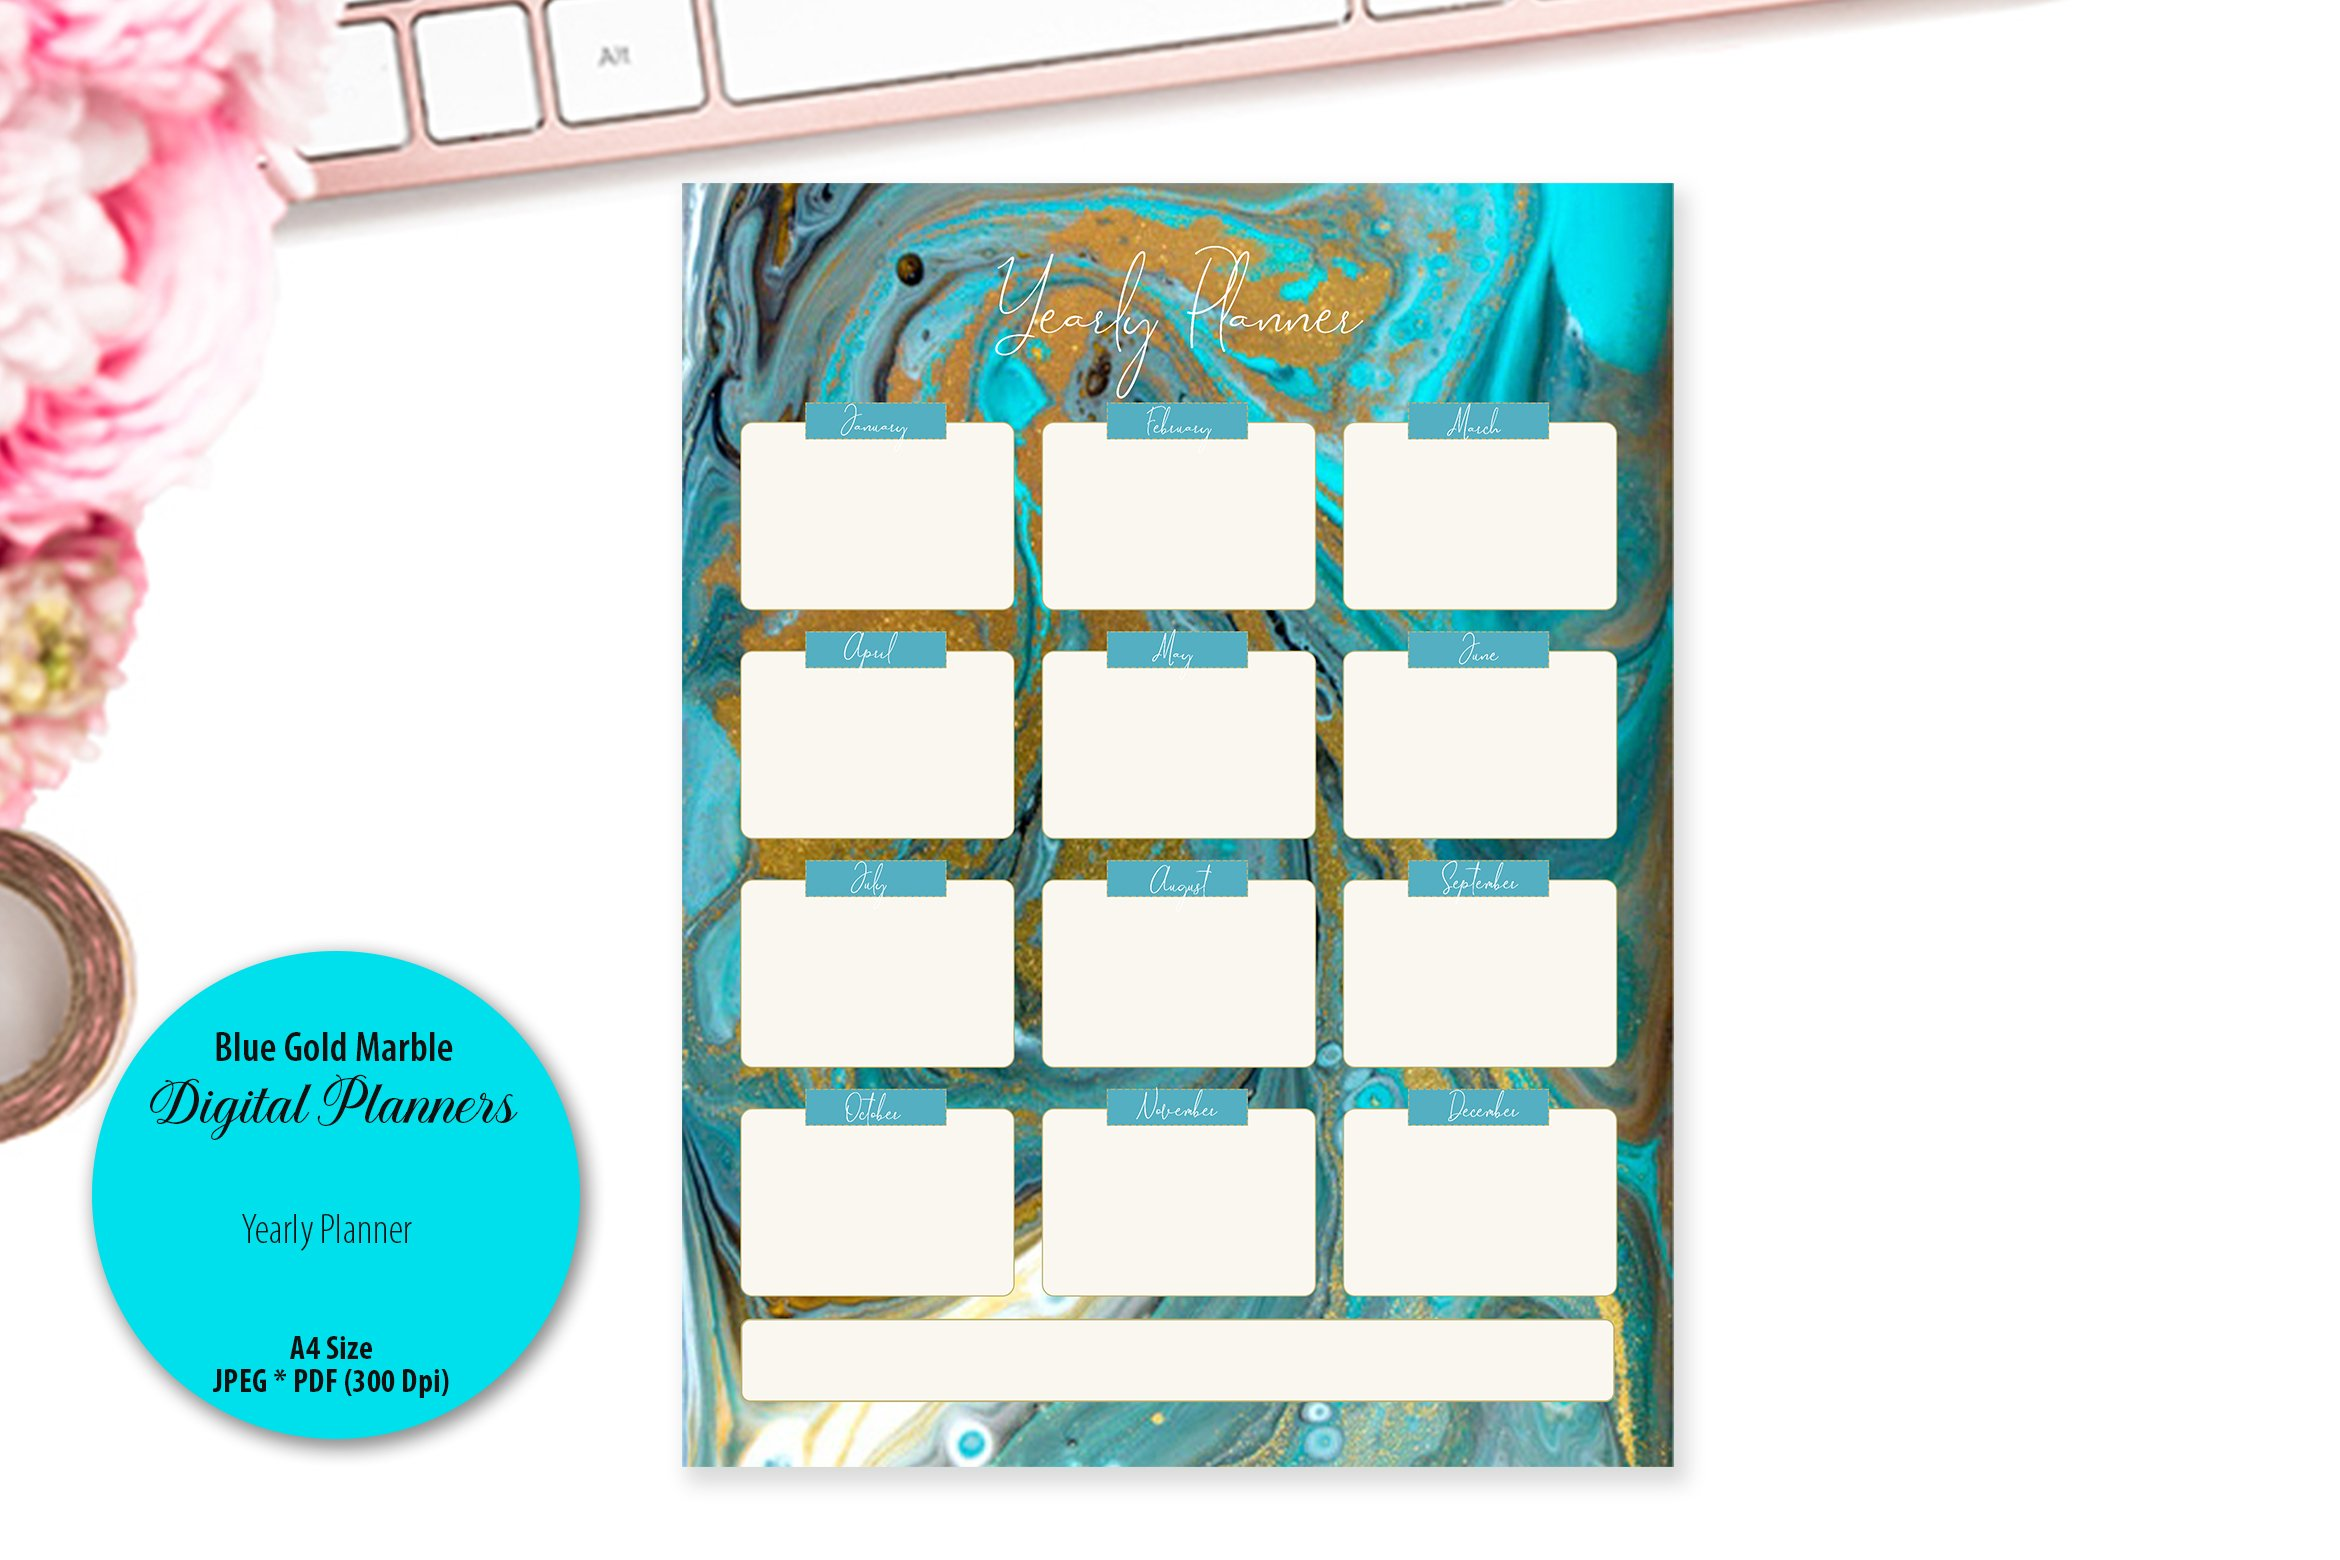 Blue Gold Marble Digital Planner example image 5